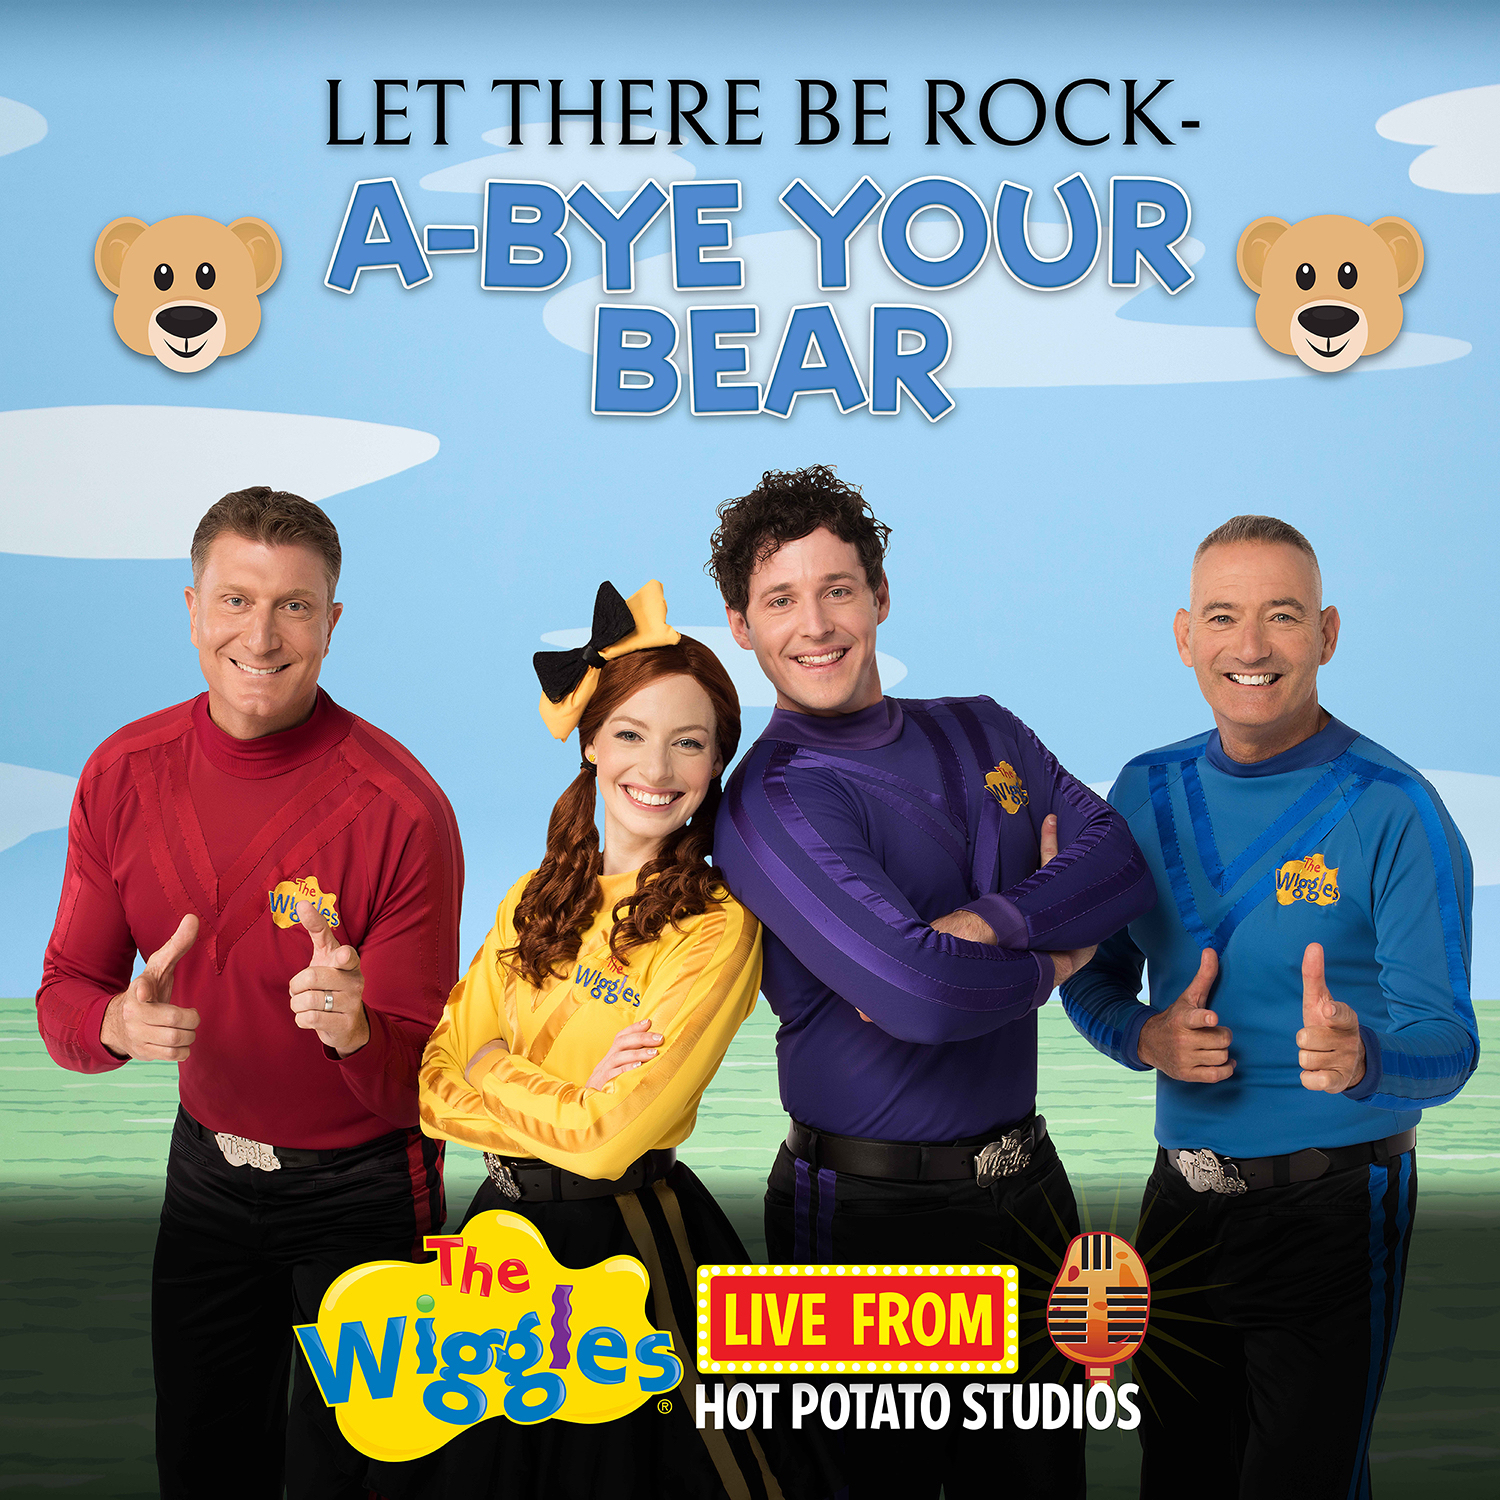 Let There Be Rock-a-Bye Your Bear (album)